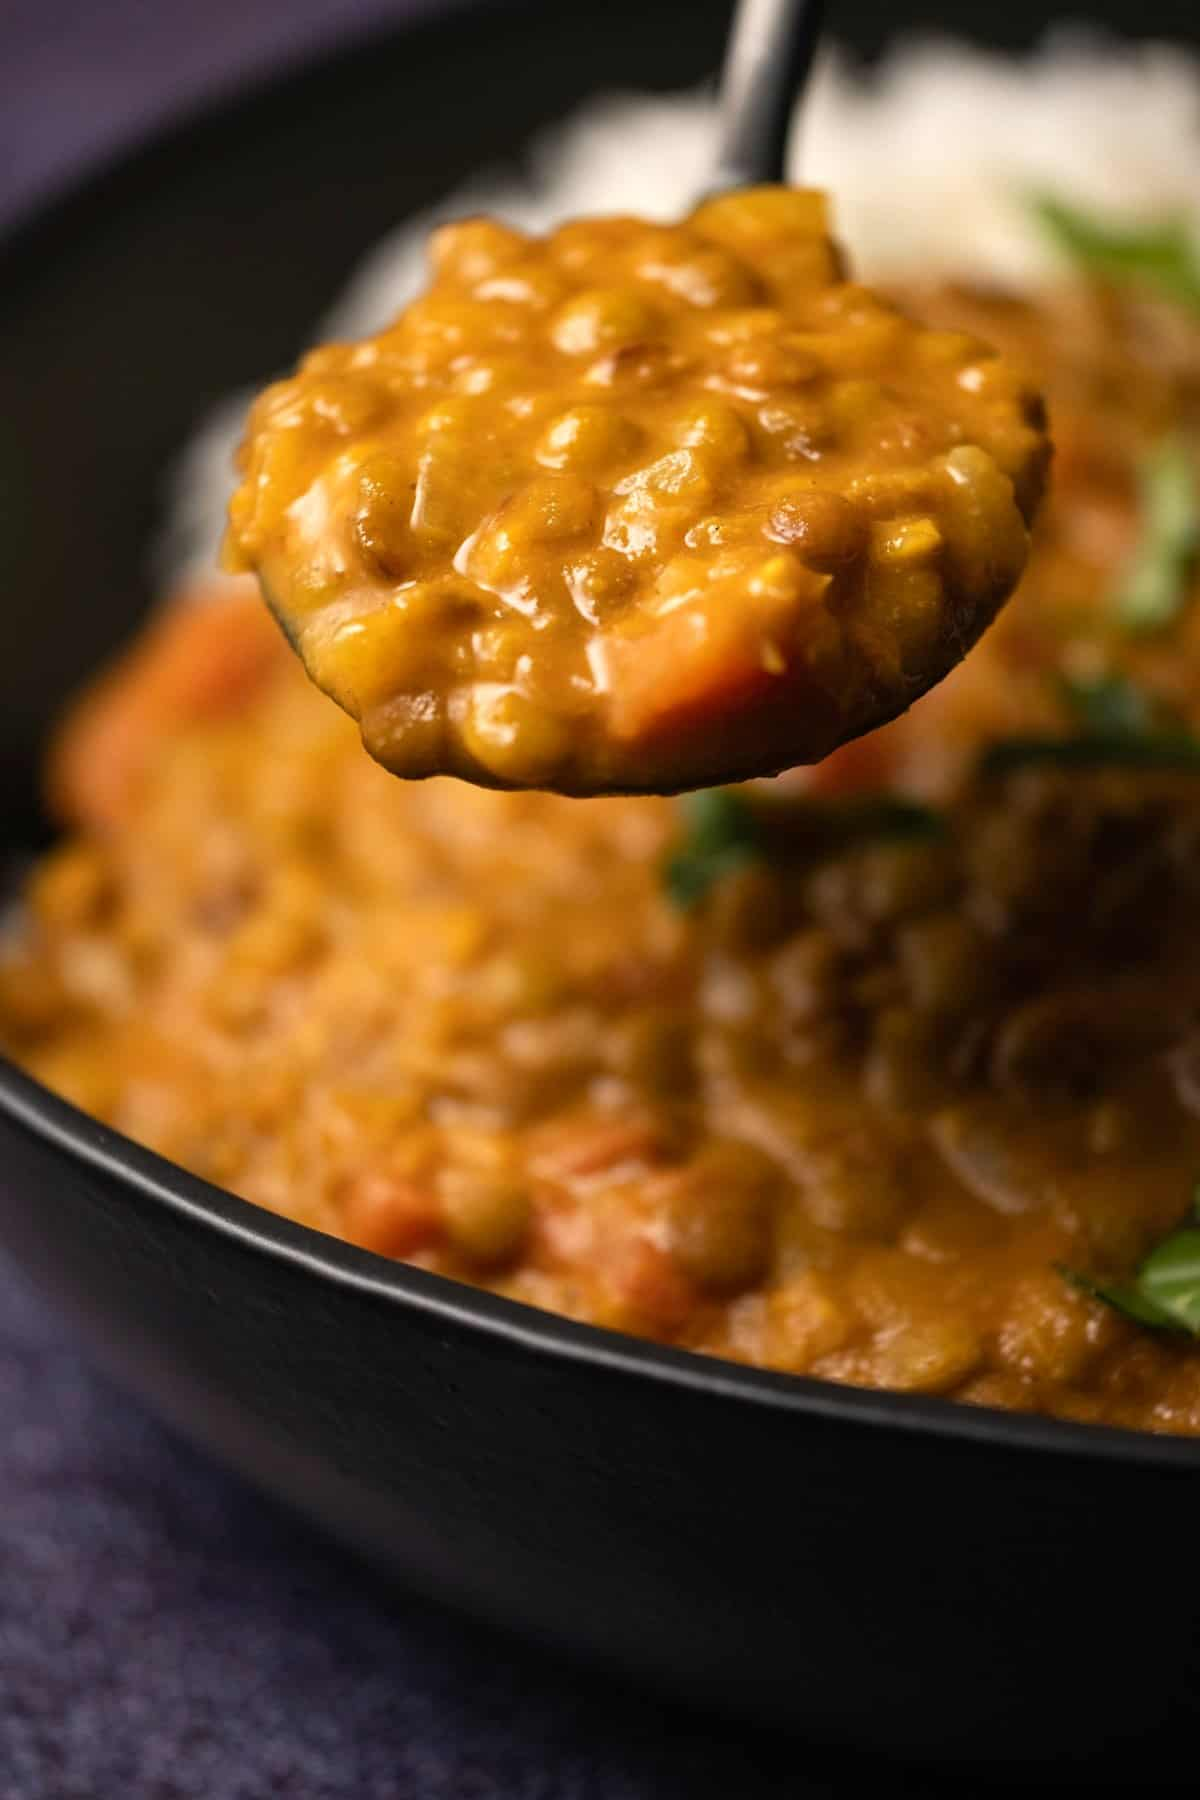 Spoonful of lentil curry over a black bowl with curry and rice.